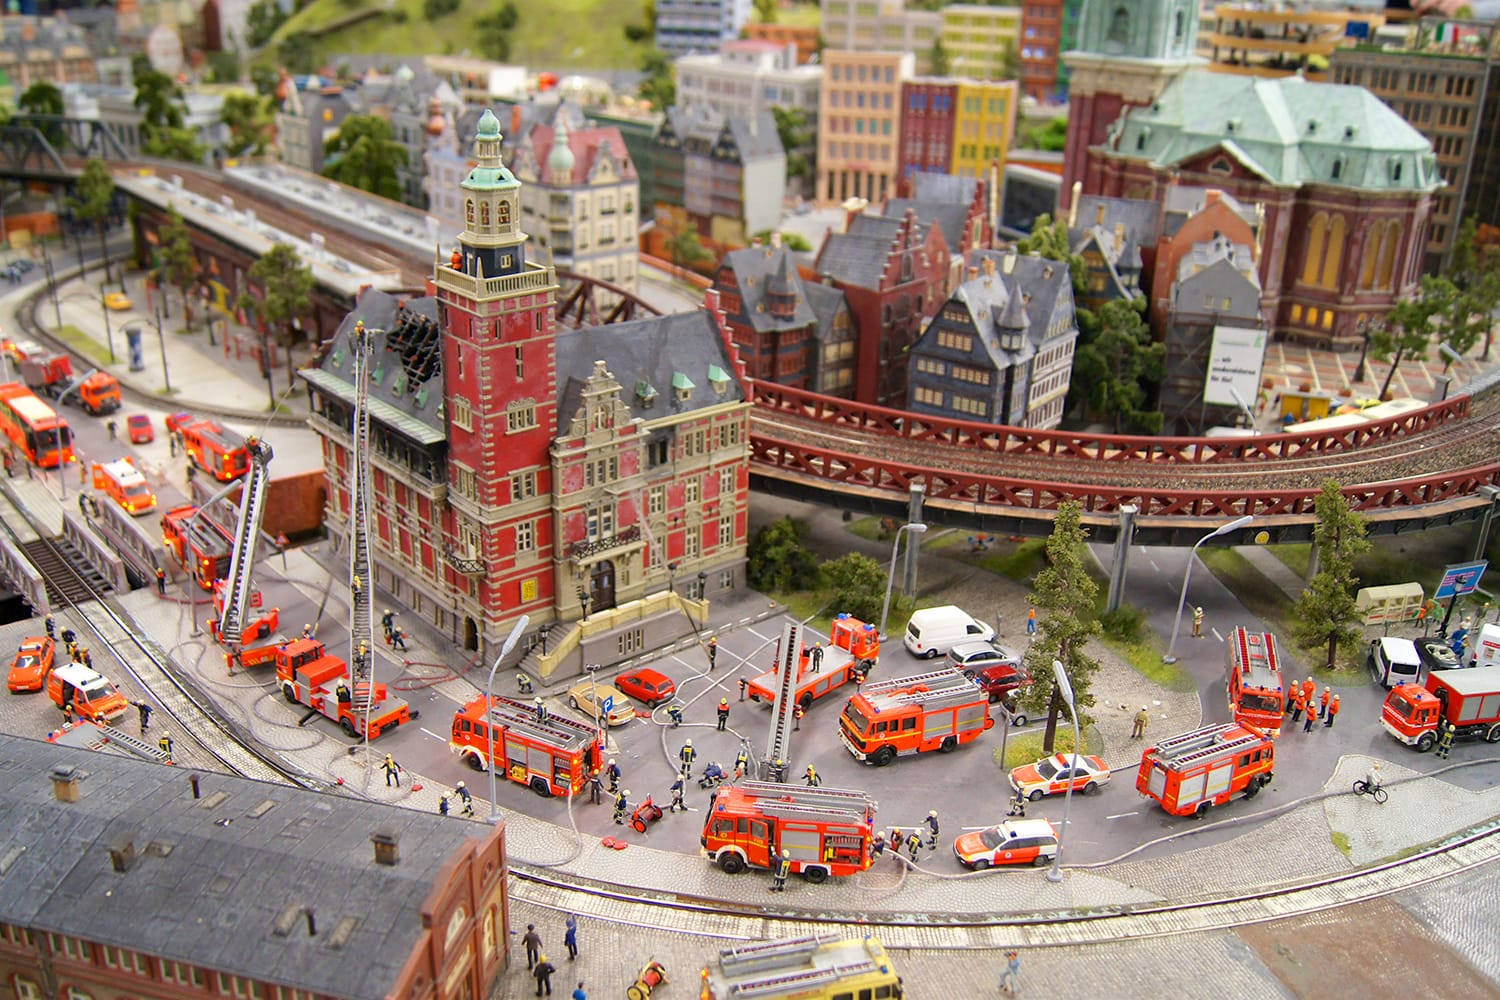 Miniatur Wunderland in Hamburg, Germany